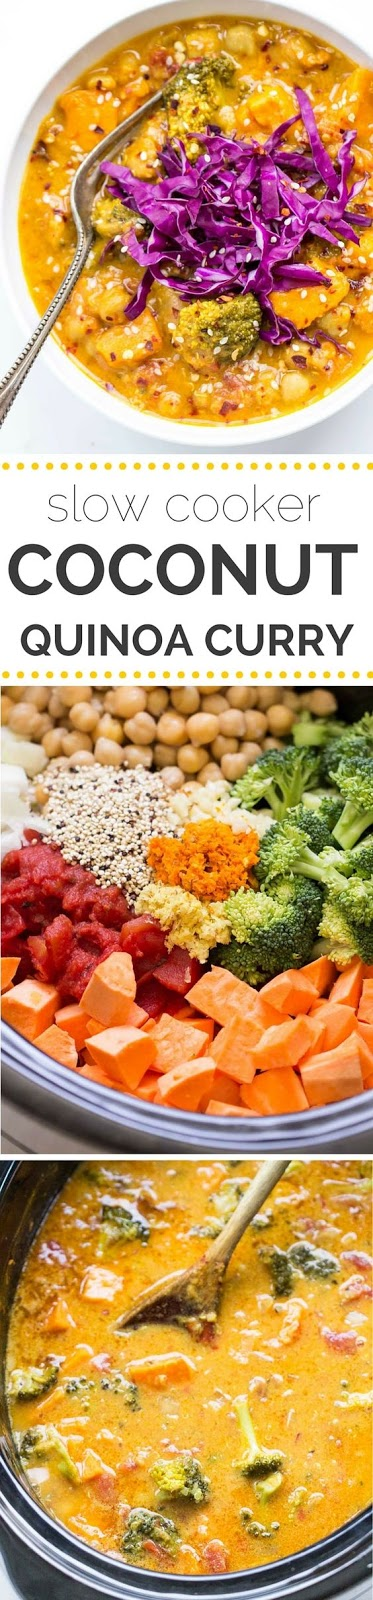 ★★★★☆ 4390 ratings      | Slow Cooker Coconut Quinoa Curry #Slow #Cooker #Coconut #Quinoa #Curry